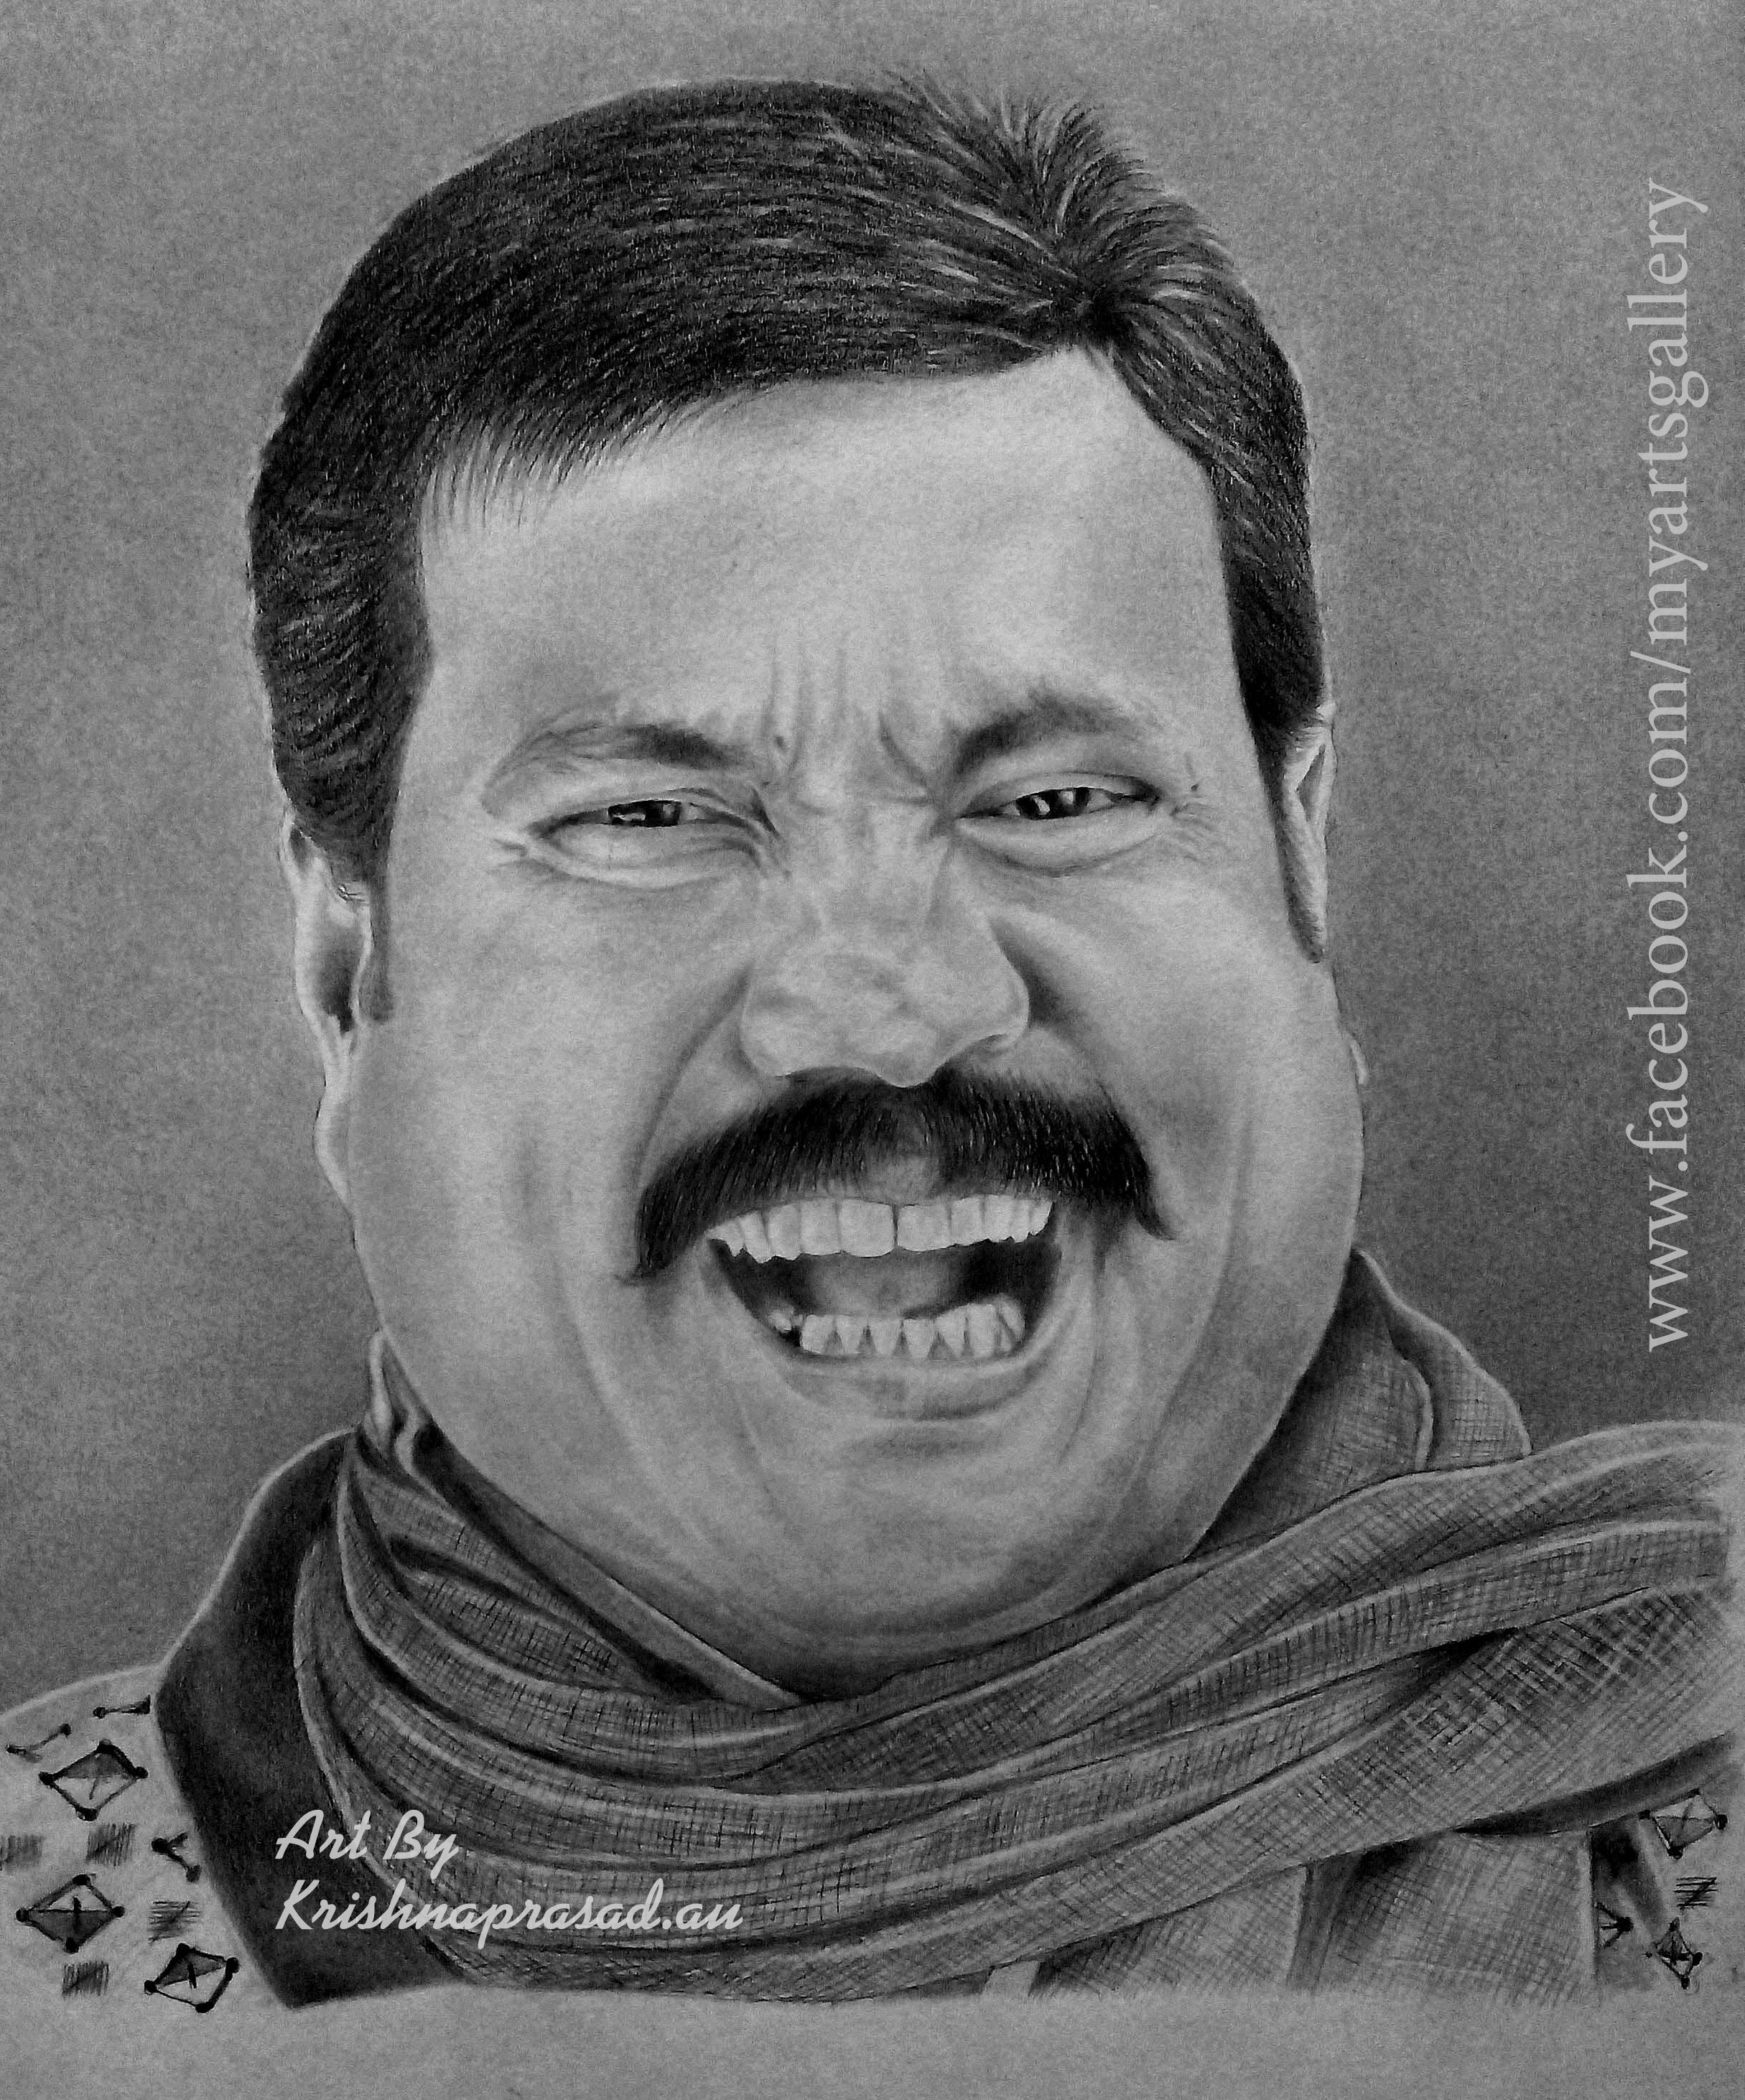 My art work portrait of actor kalabhavan mani pencils camlin 10b 8bhb6h4h5bh6h duration 30 hours size a4 www facebook com